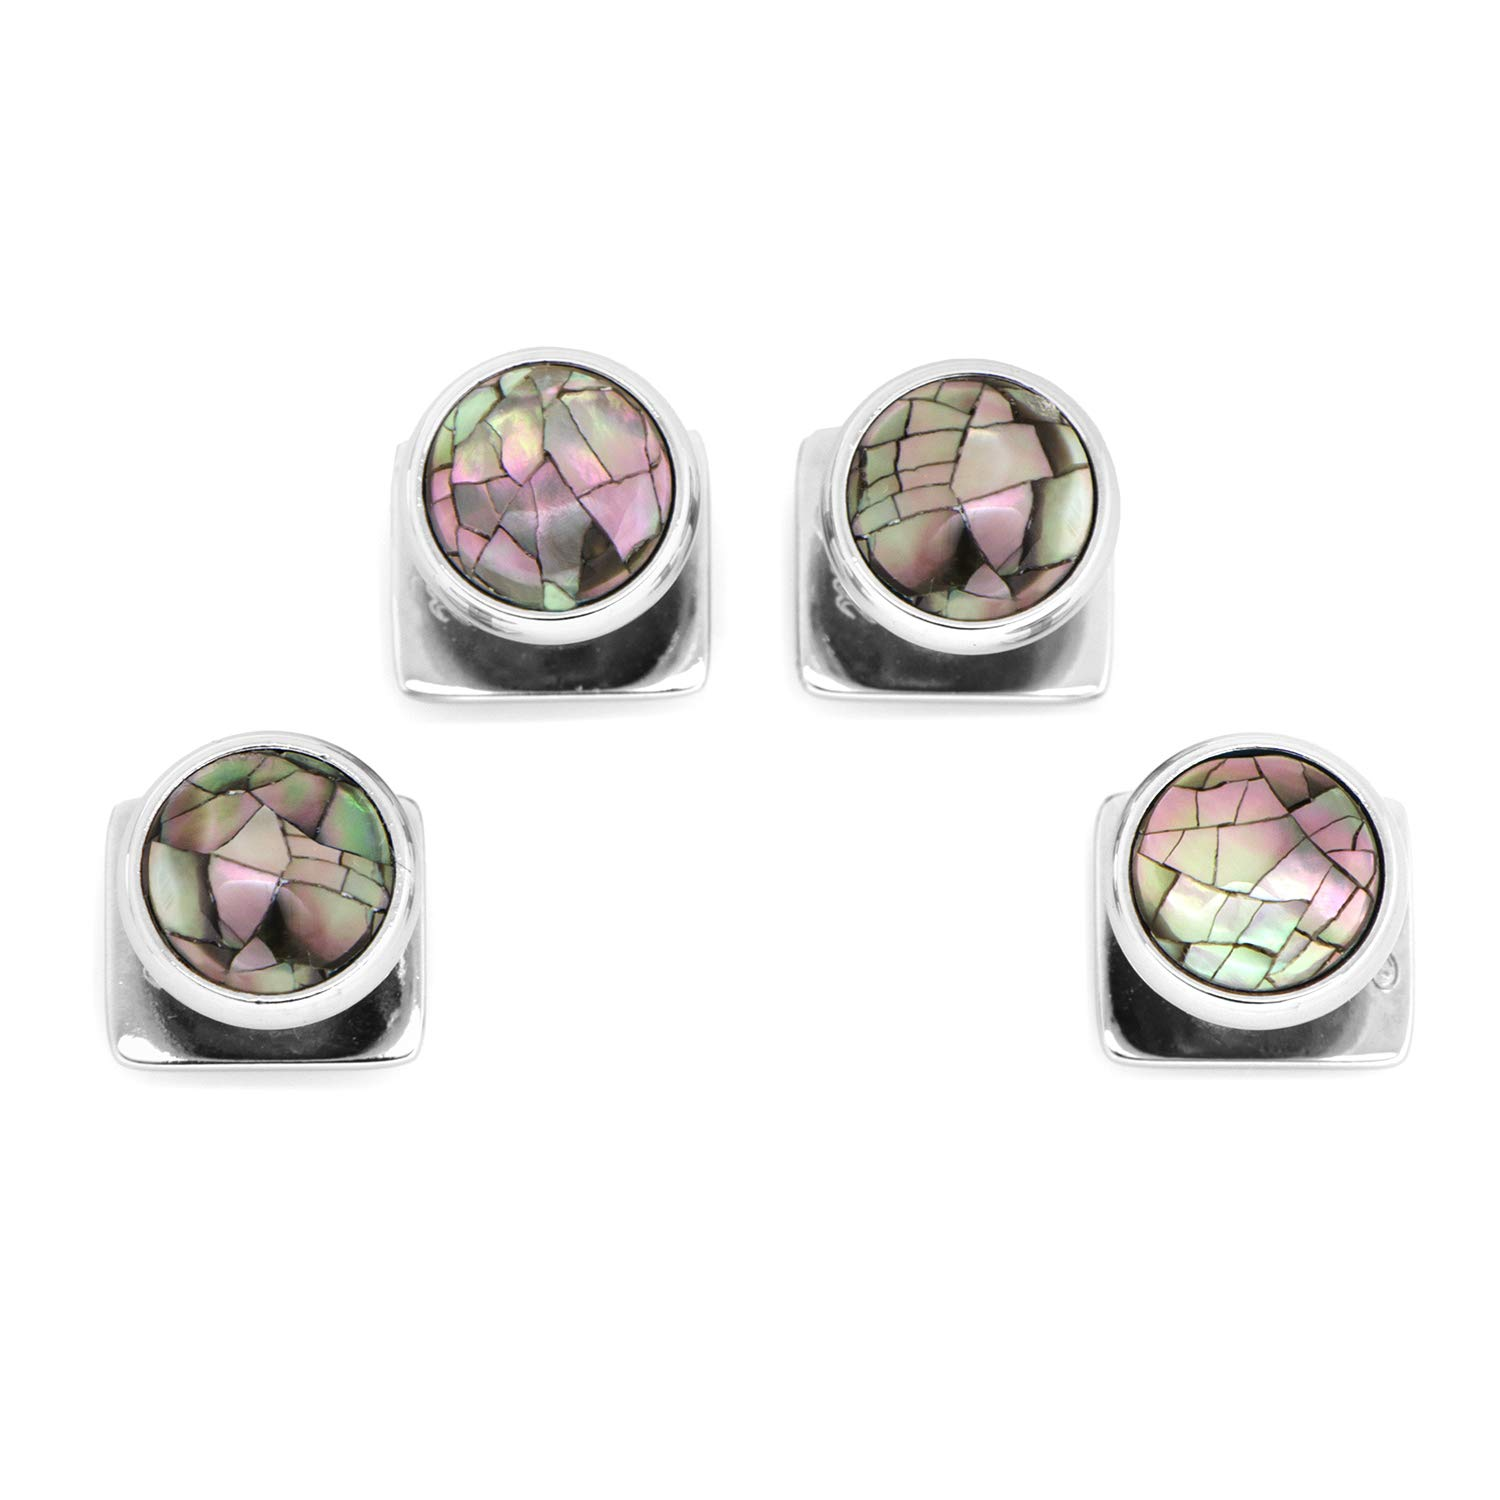 Ox and Bull Trading Co. Mosaic Smoke Mother of Pearl Studs